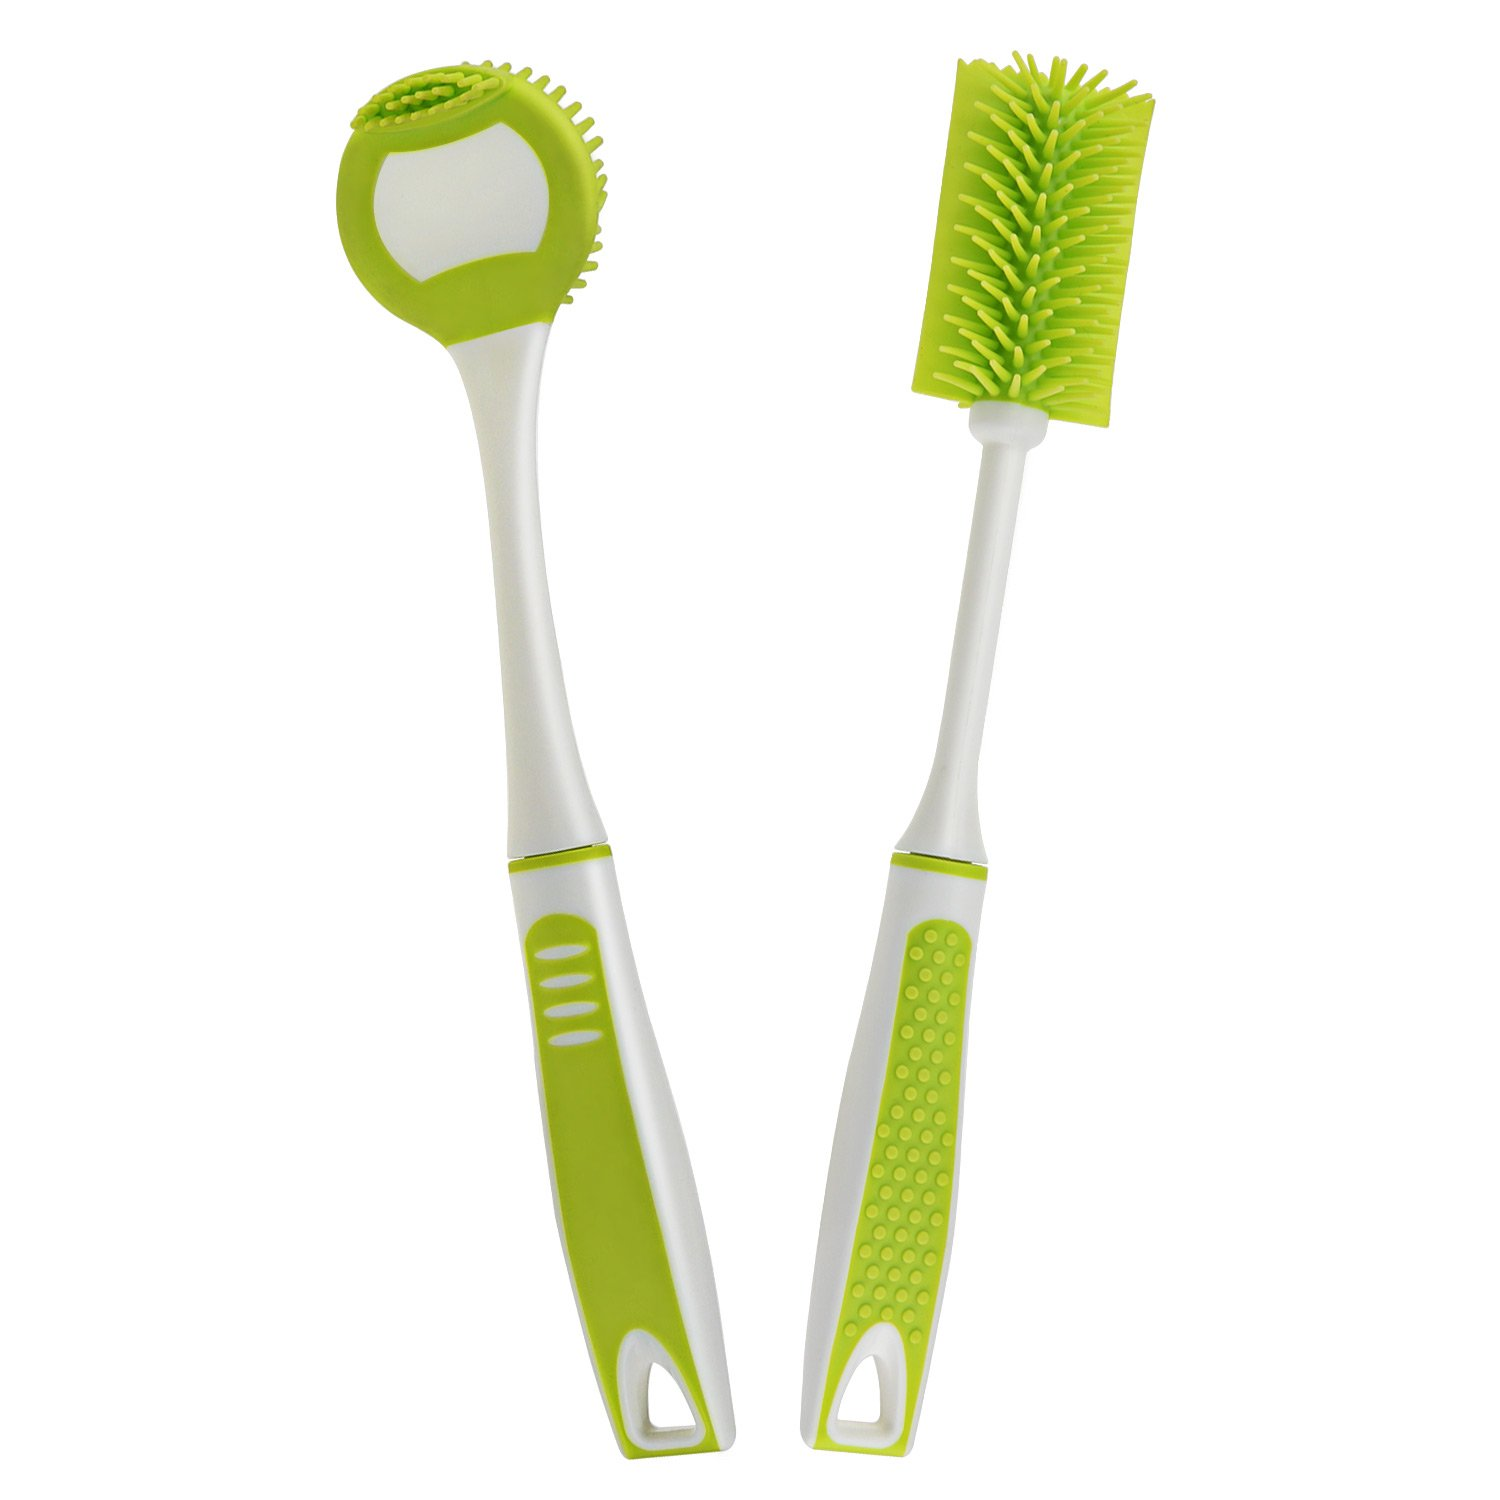 NKTM Silicon Kitchen Brush and Bottle Brush for Cleaning Dish/Pot/Bowl/Bottle(Set of 2)